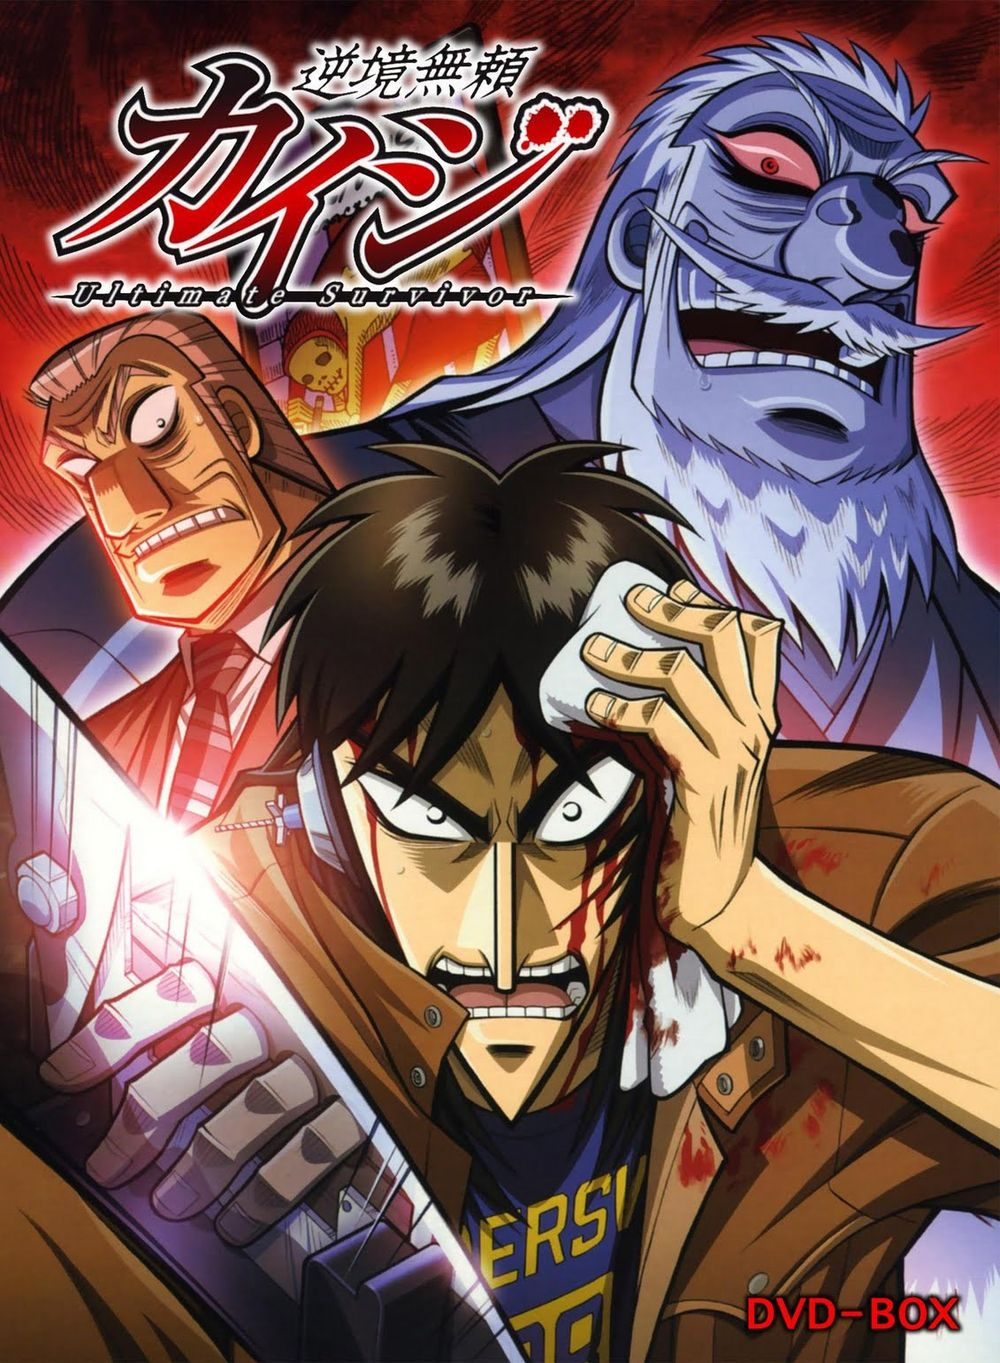 Kaiji pesquisa google day drinking episode 5 watches online best animes ever